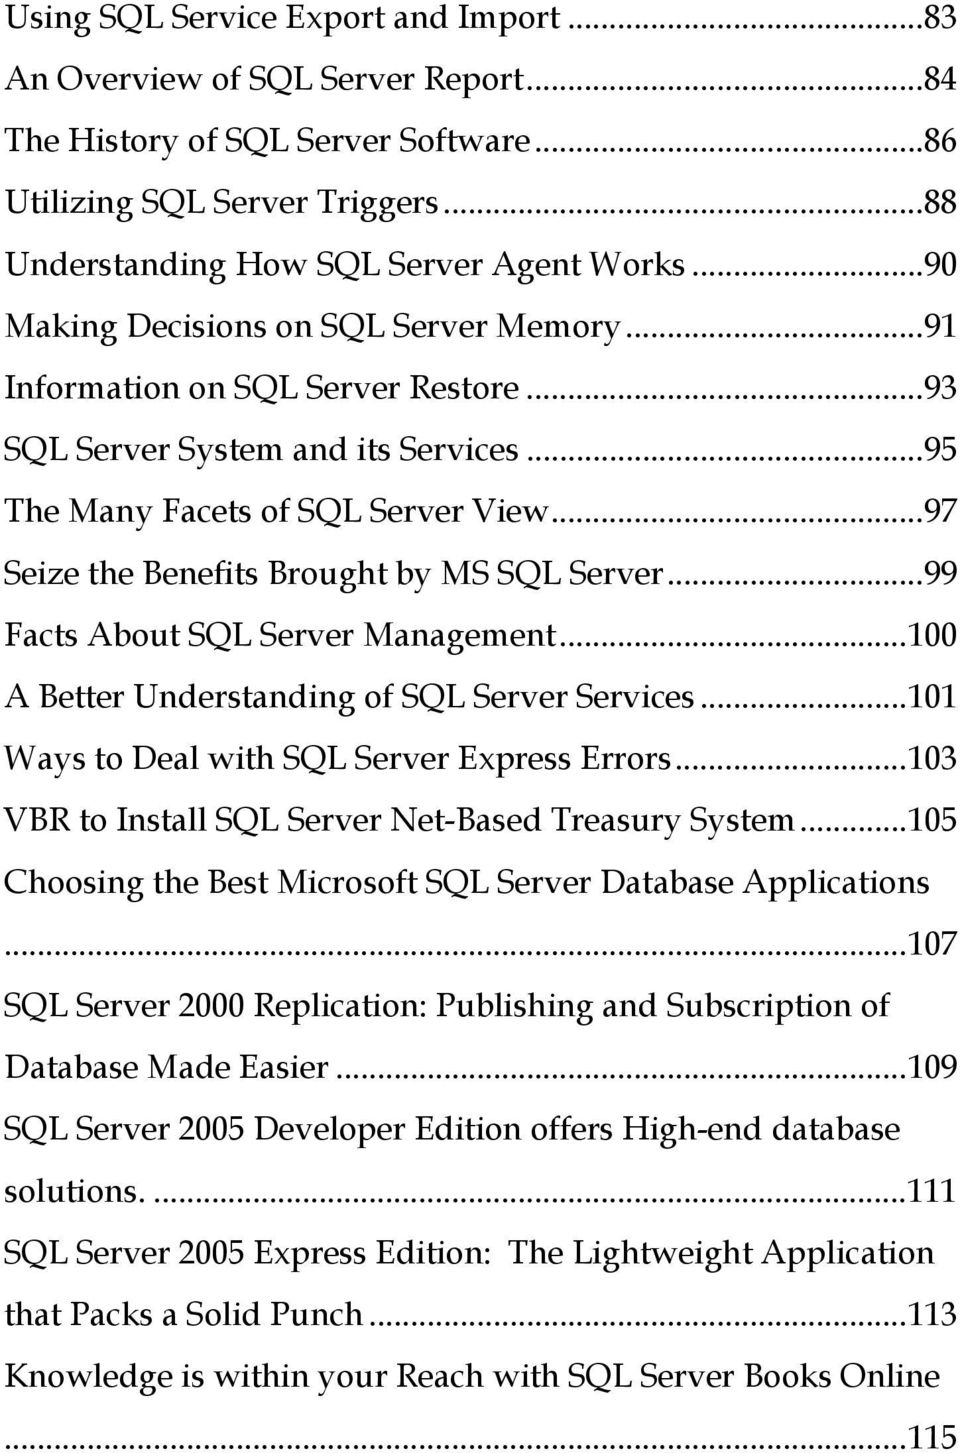 ..97 Seize the Benefits Brought by MS SQL Server...99 Facts About SQL Server Management...100 A Better Understanding of SQL Server Services...101 Ways to Deal with SQL Server Express Errors.